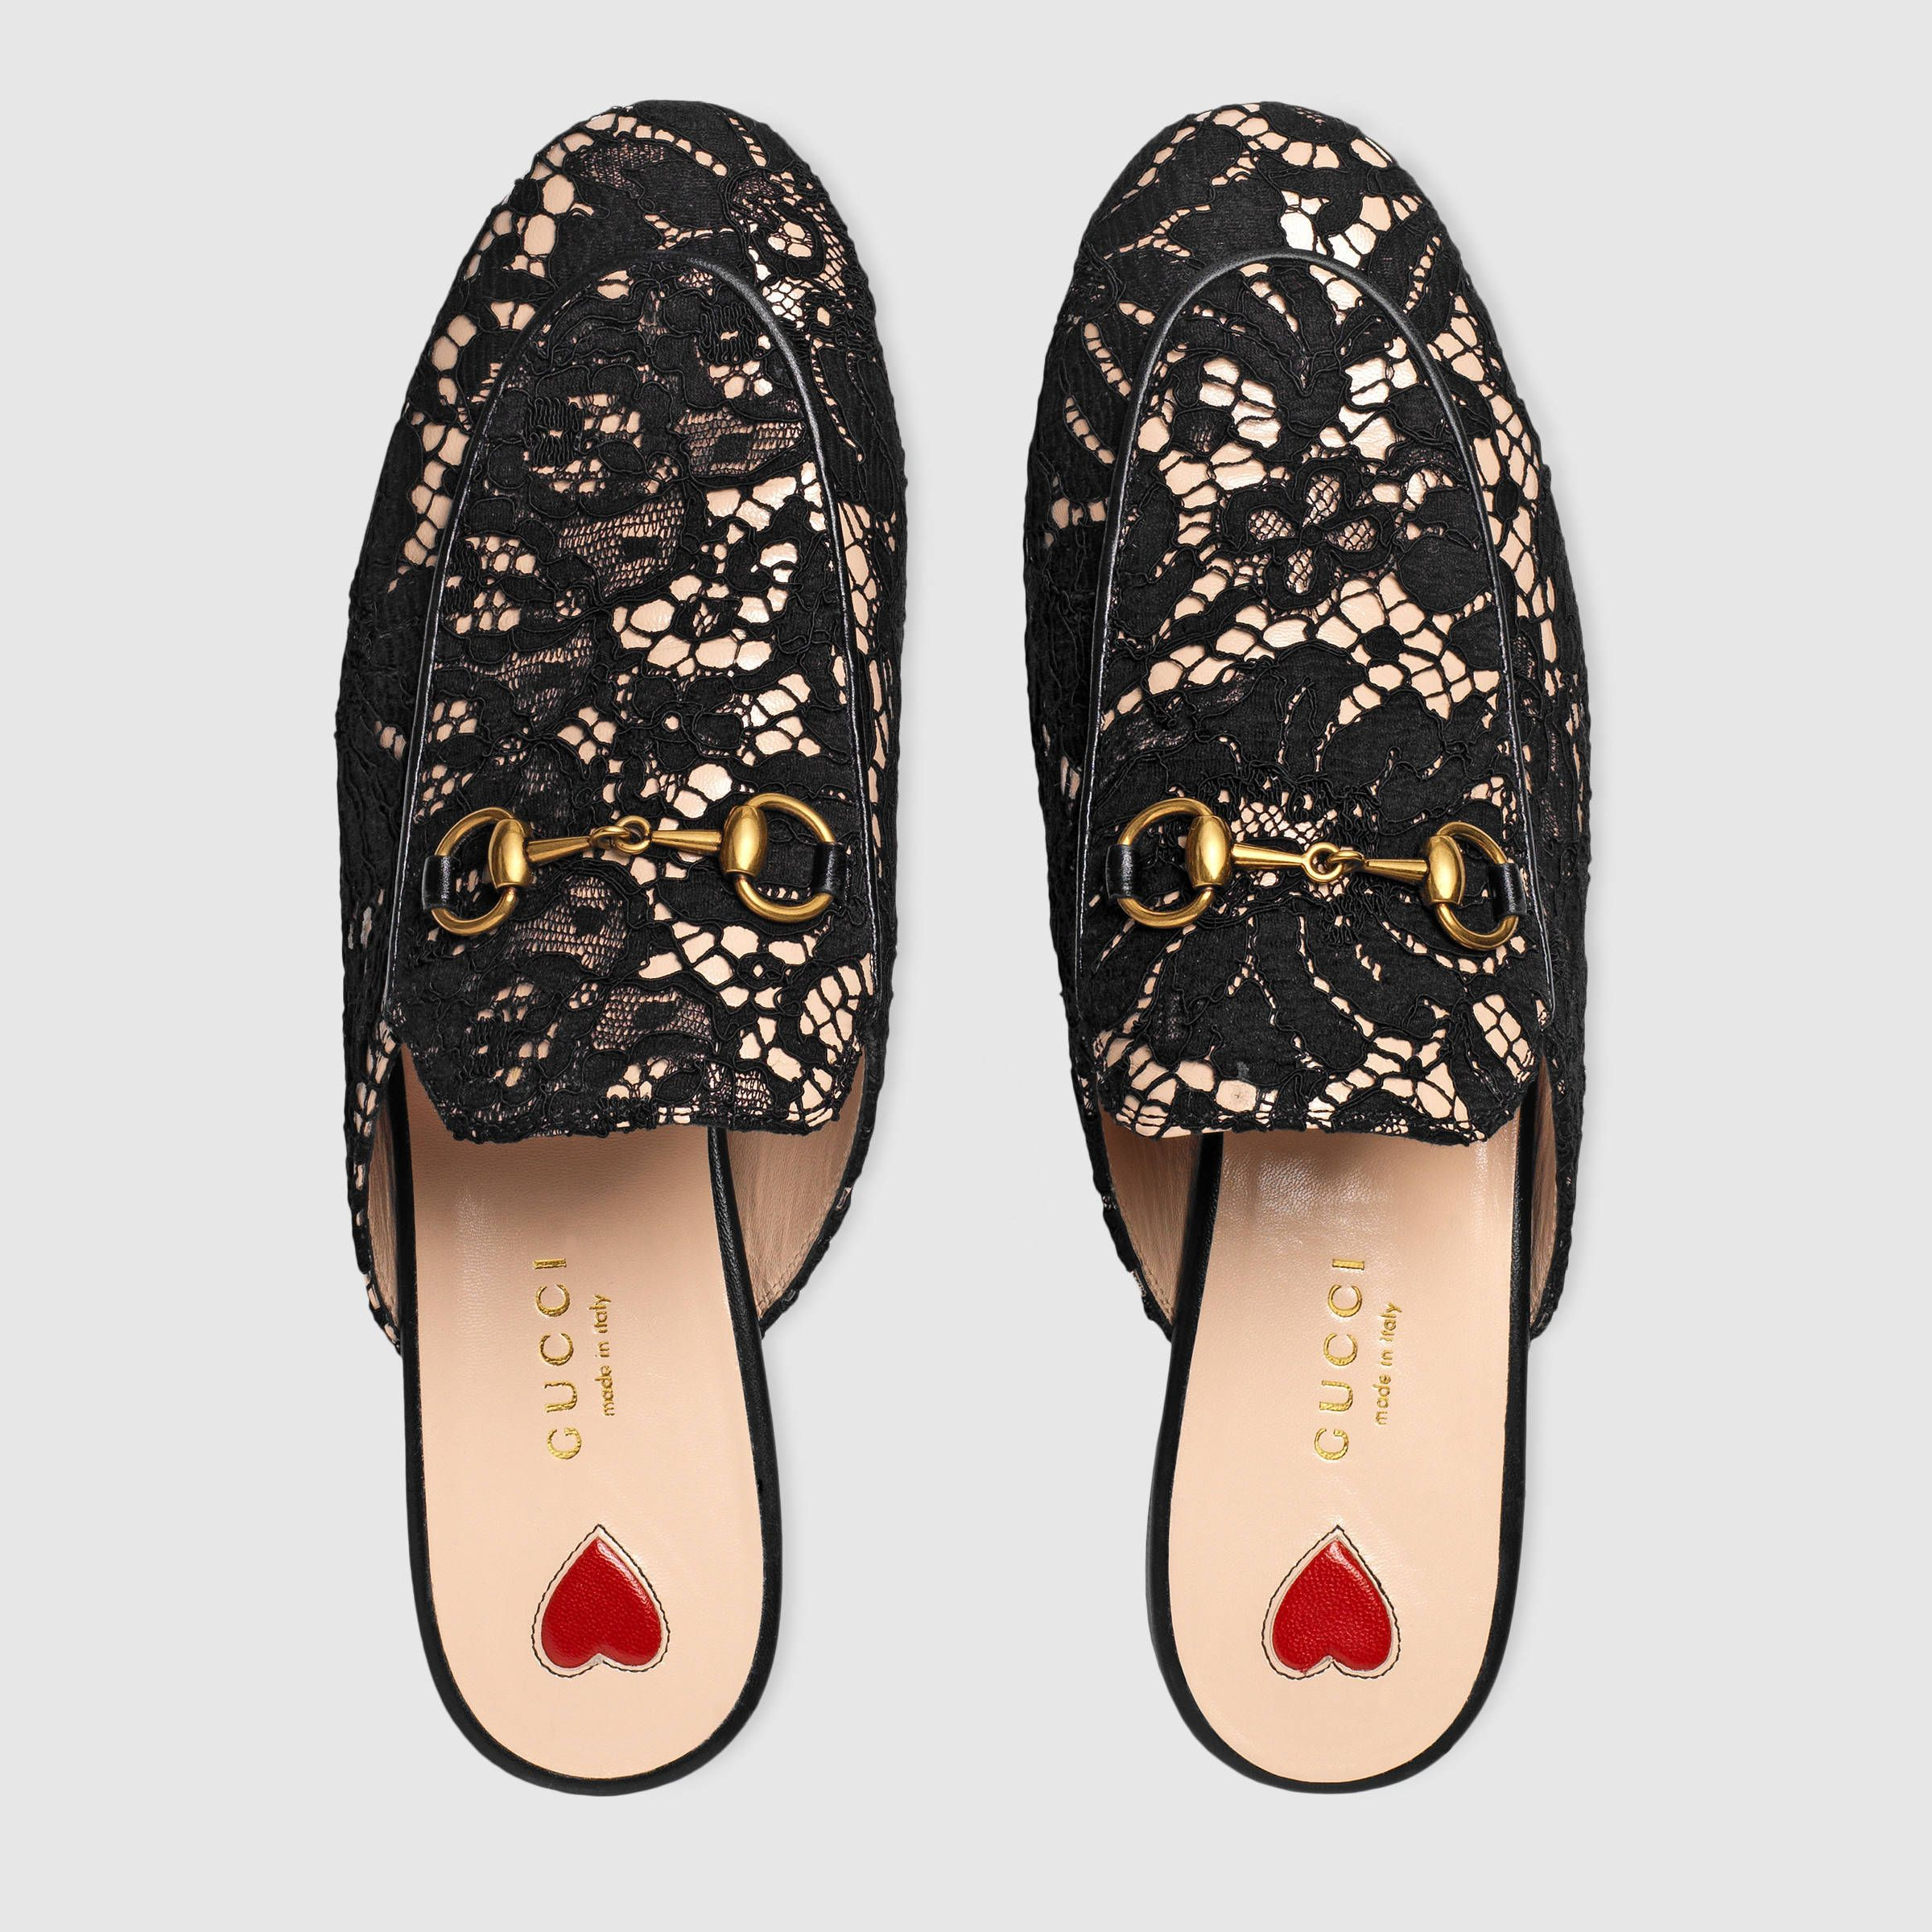 bdf0e0c98 Gucci Princetown lace slipper Detail 3 | Shopping! in 2019 | Shoes ...